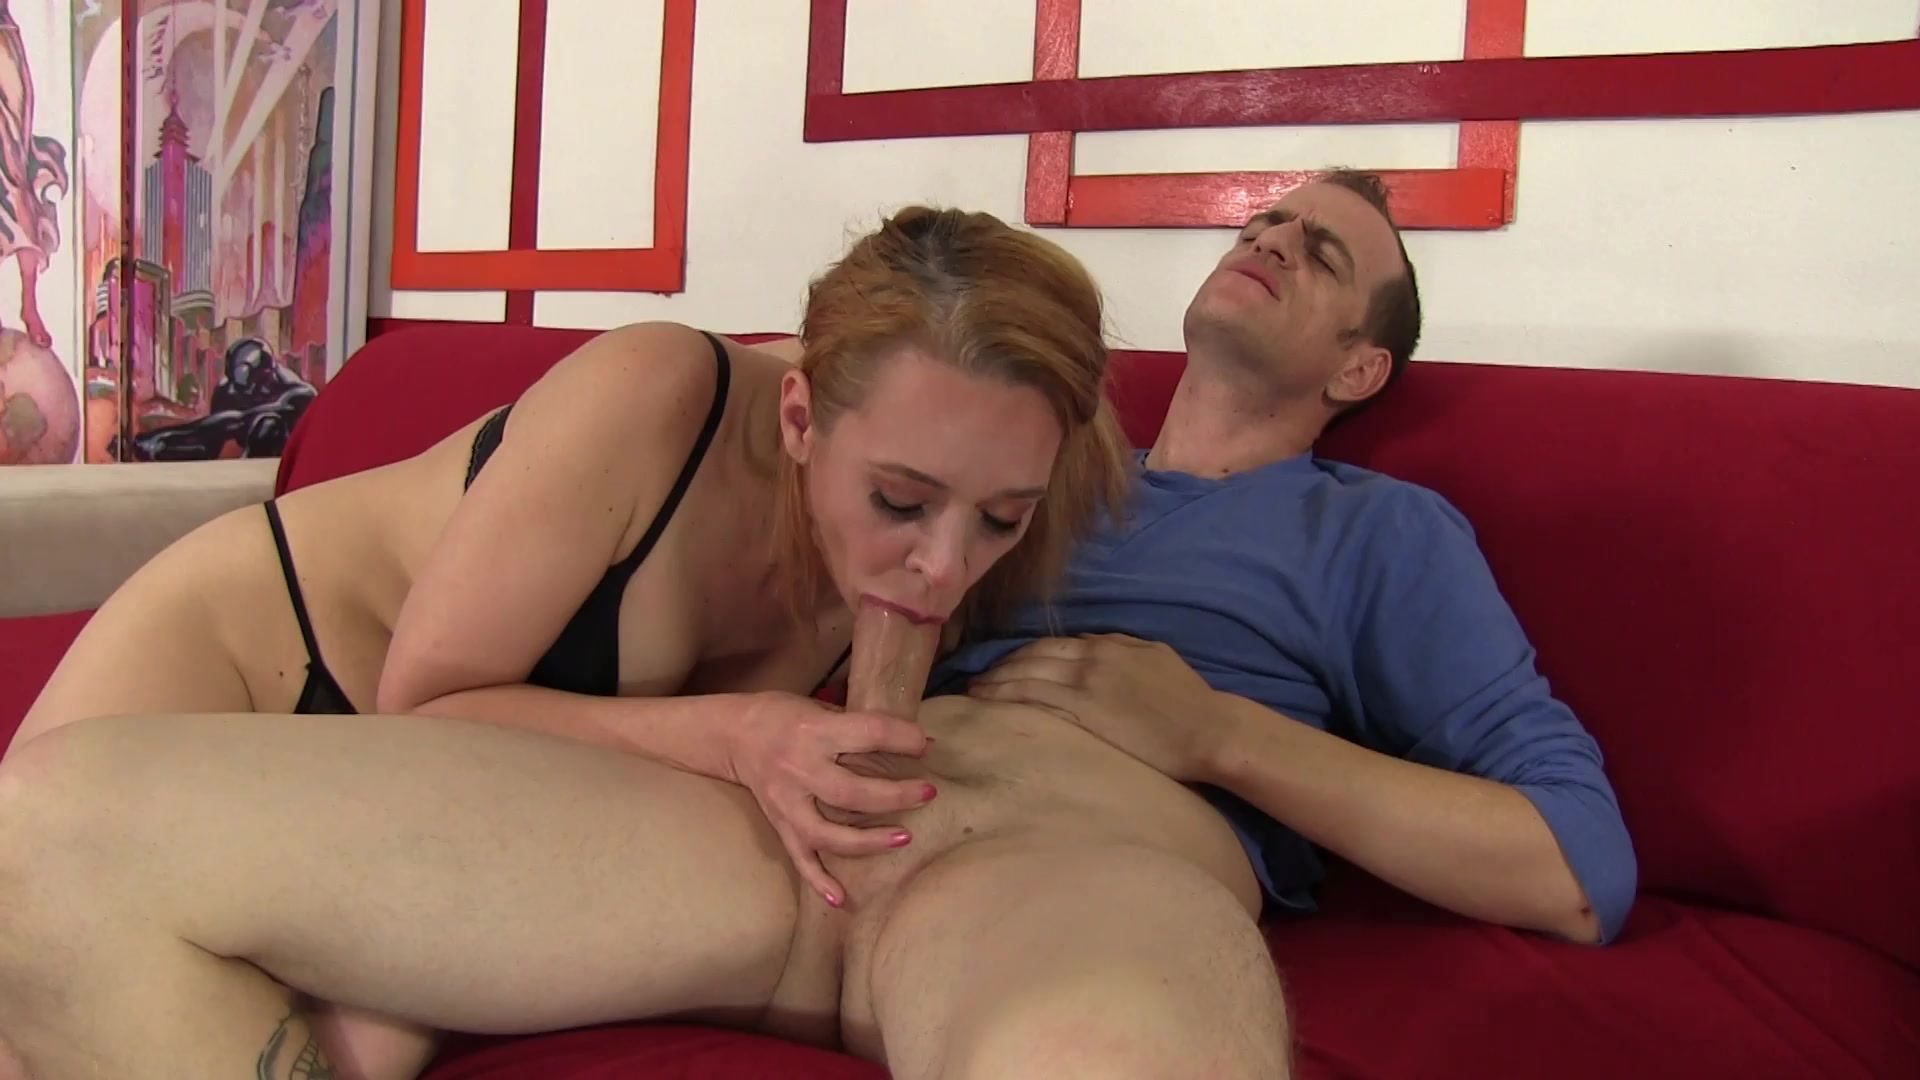 Pretty MILF Sable Renne Sucks His Big Dick and Gets Nailed on the Couch  from Grannies Love It Big 2 | Rookie Nookie Productions | Adult Empire  Unlimited